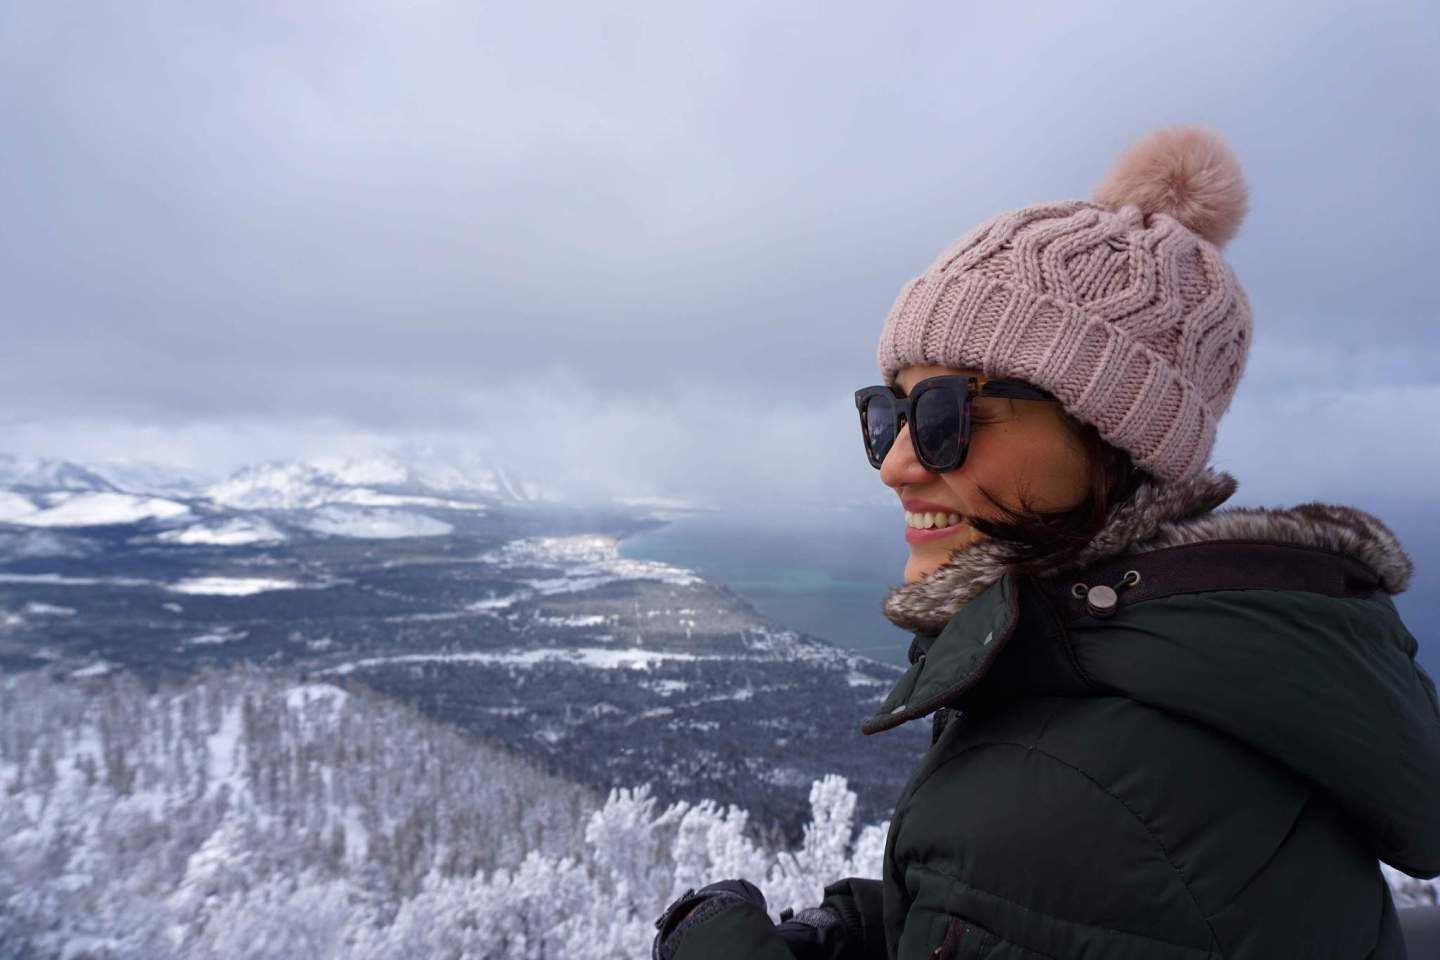 South Lake Tahoe Travel Guide - IN BETWEEN LATTES BLOG 4